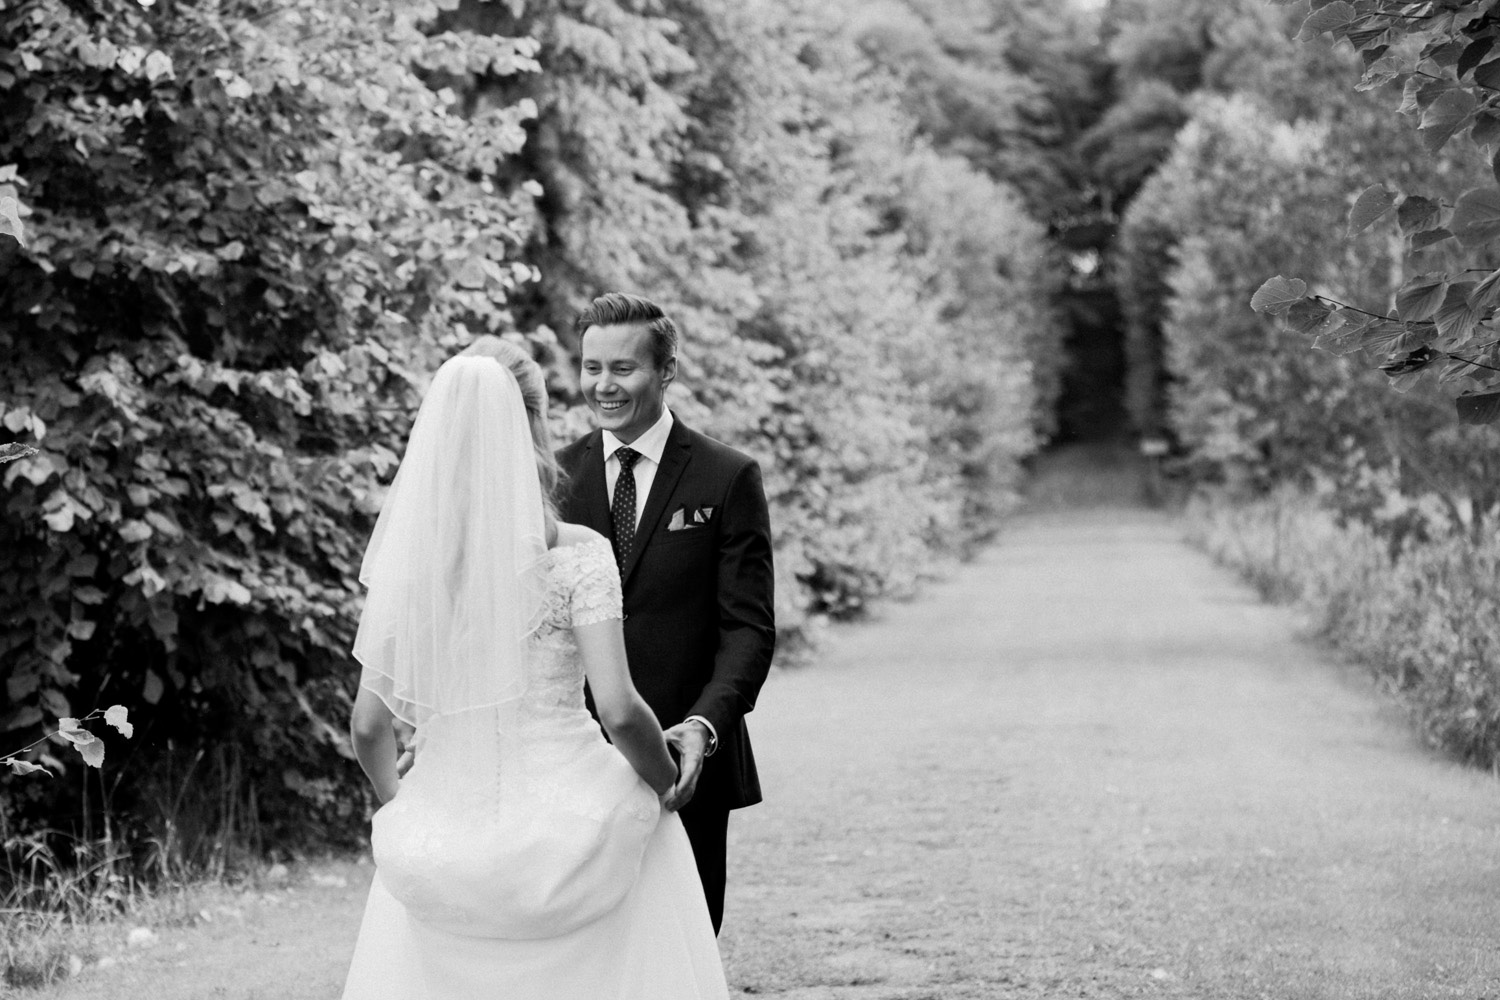 013-sweden-vidbynäs-wedding-photographer-bröllopsfotograf.jpg